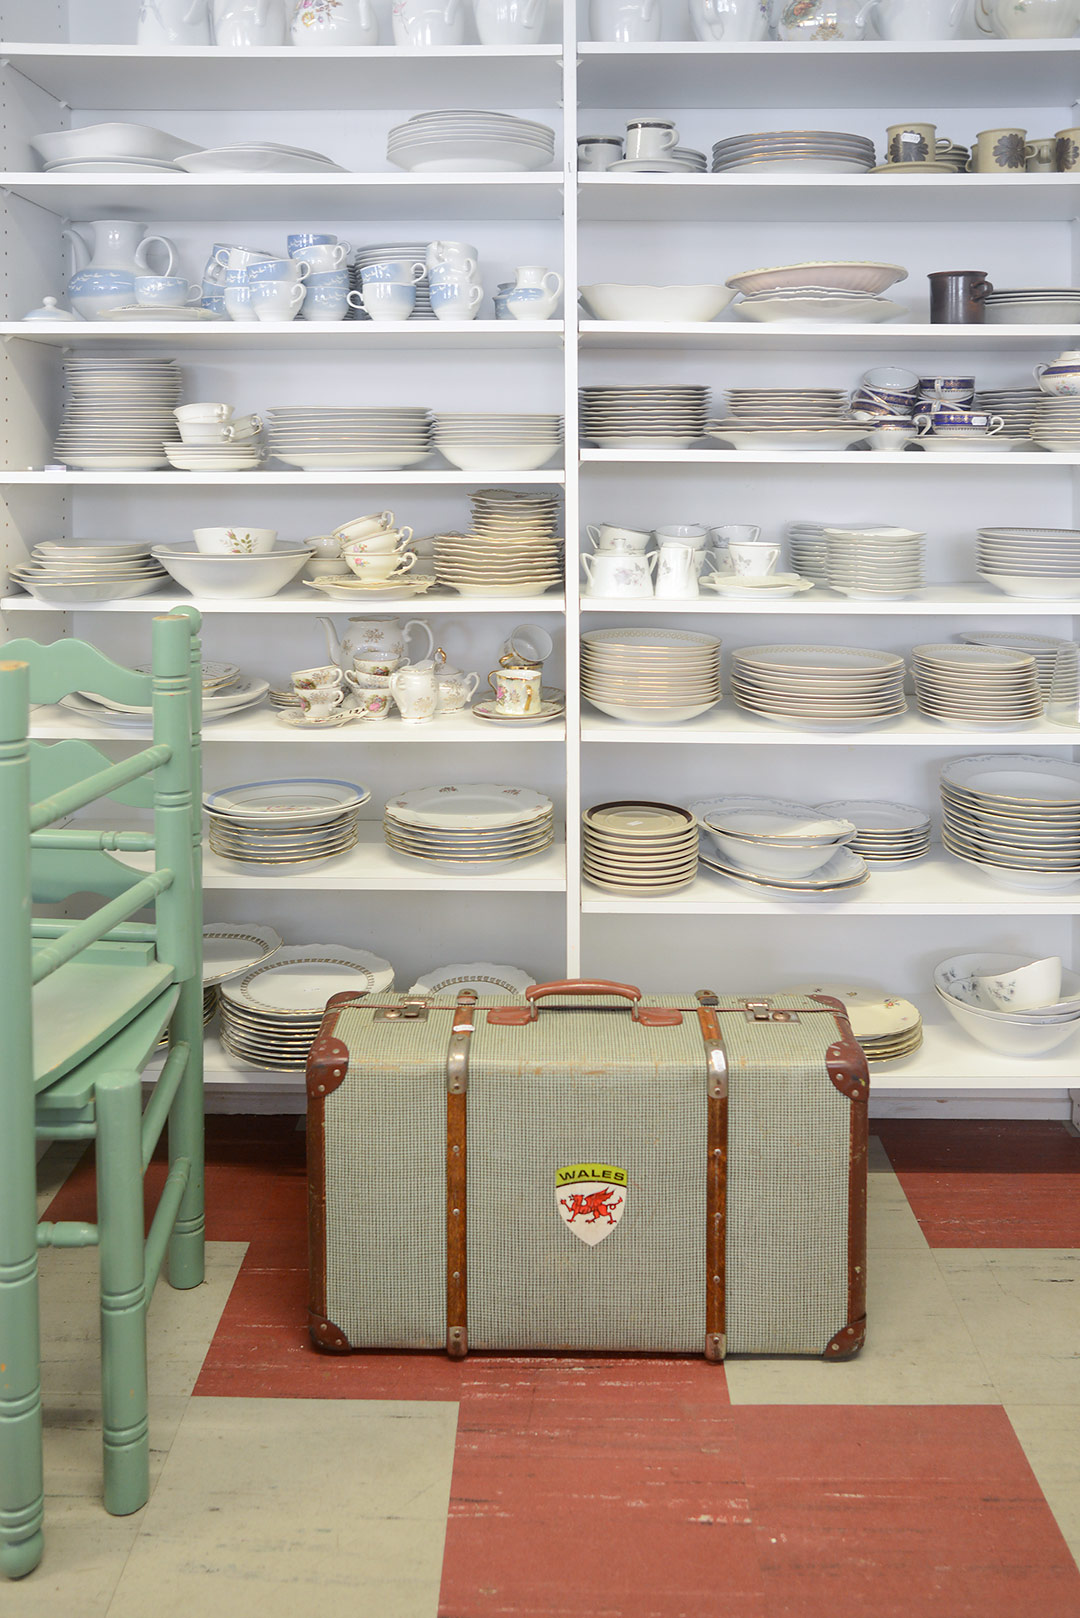 Vintage suitcase and porcelain